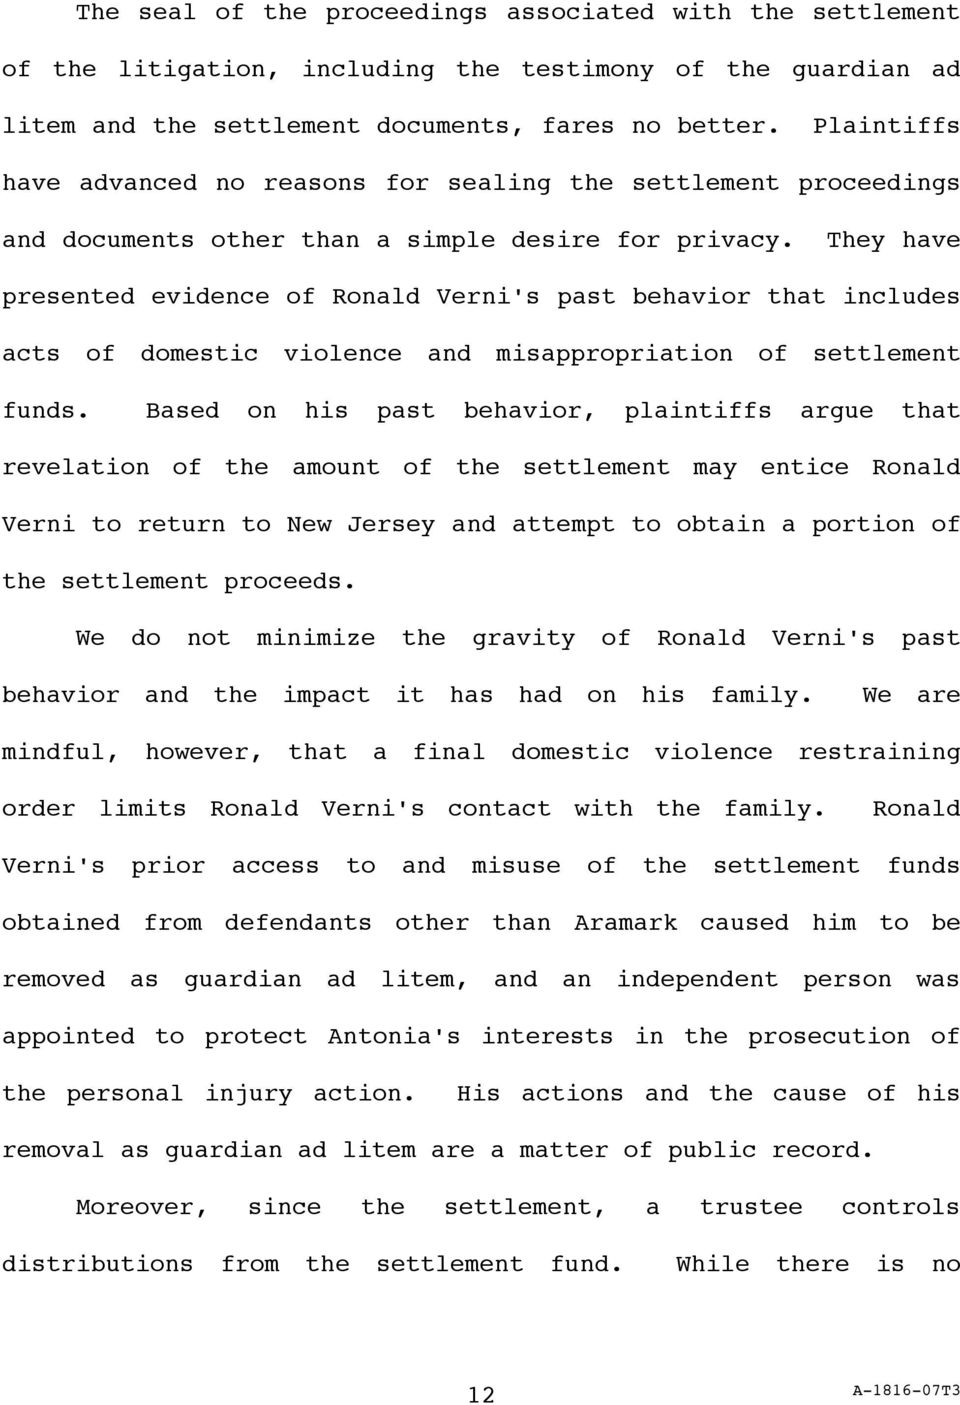 They have presented evidence of Ronald Verni's past behavior that includes acts of domestic violence and misappropriation of settlement funds.